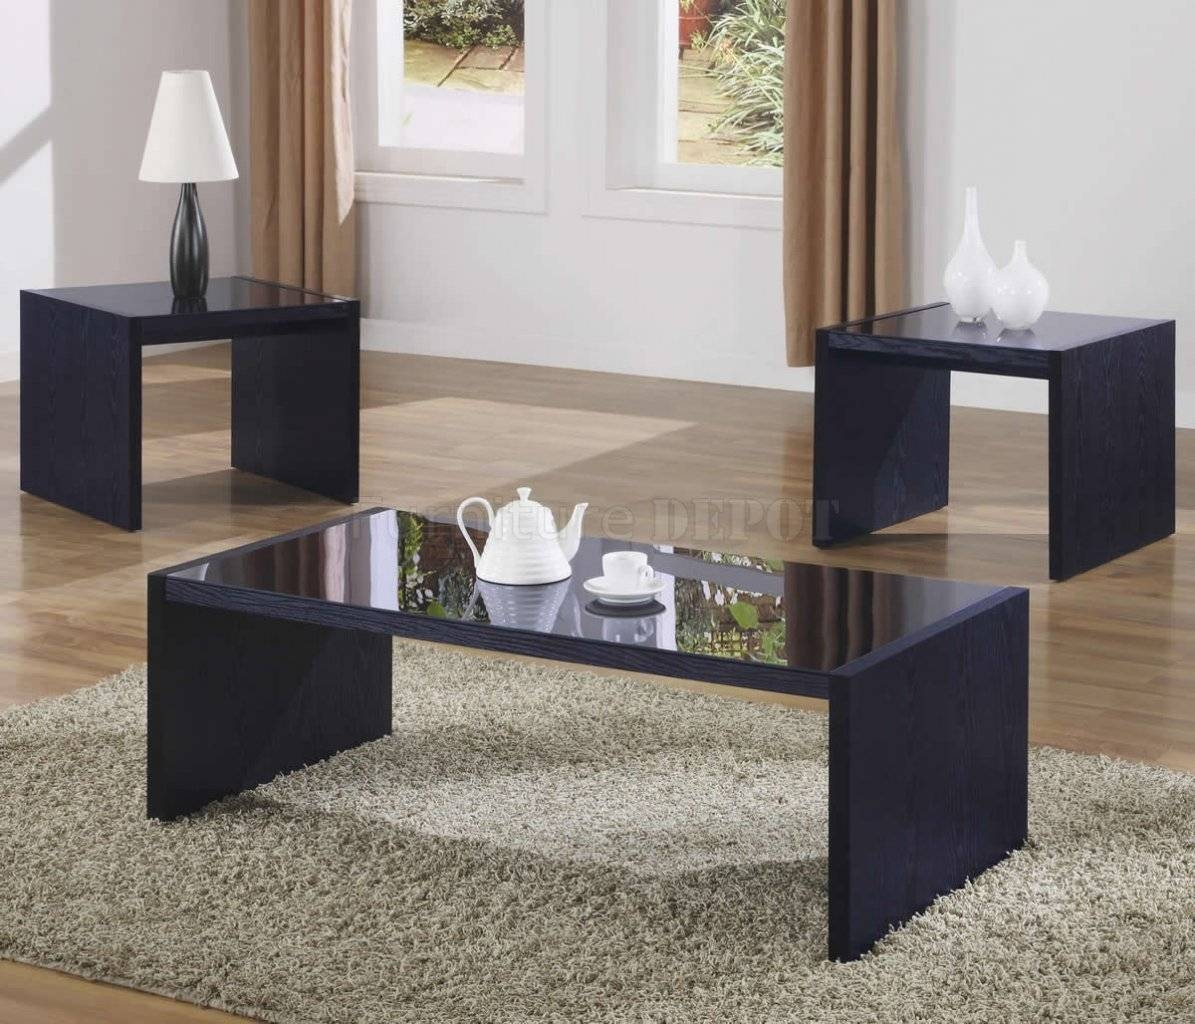 Coffee Table: Latest Modern Coffee Table Sets Designs Modern White for Black Wood and Glass Coffee Tables (Image 5 of 30)